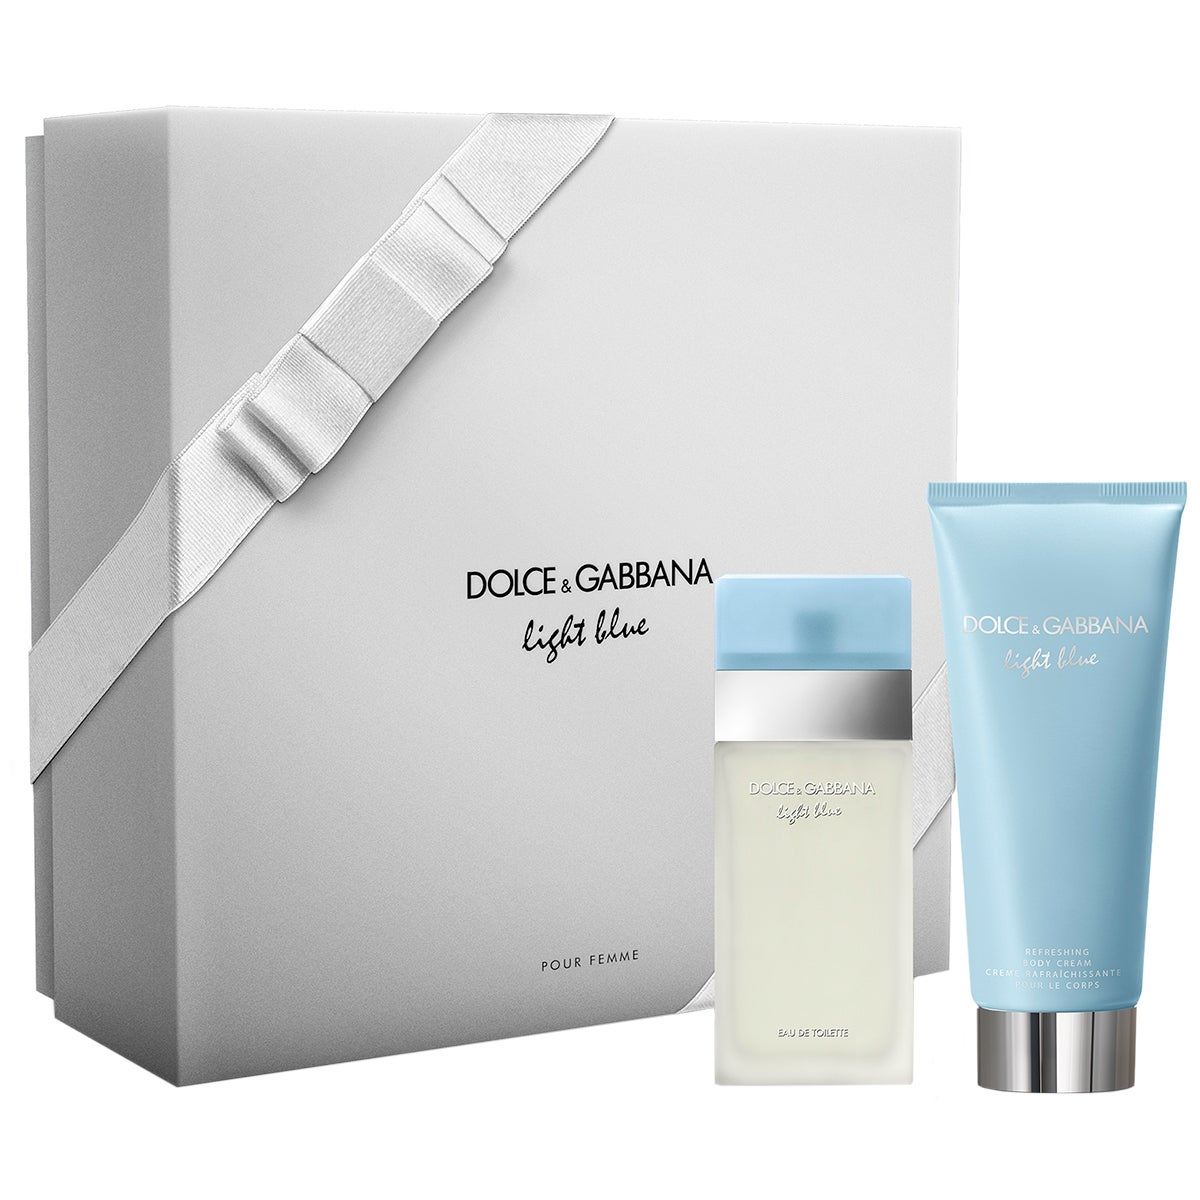 Dolce & Gabbana Light Blue Gift Set 2018